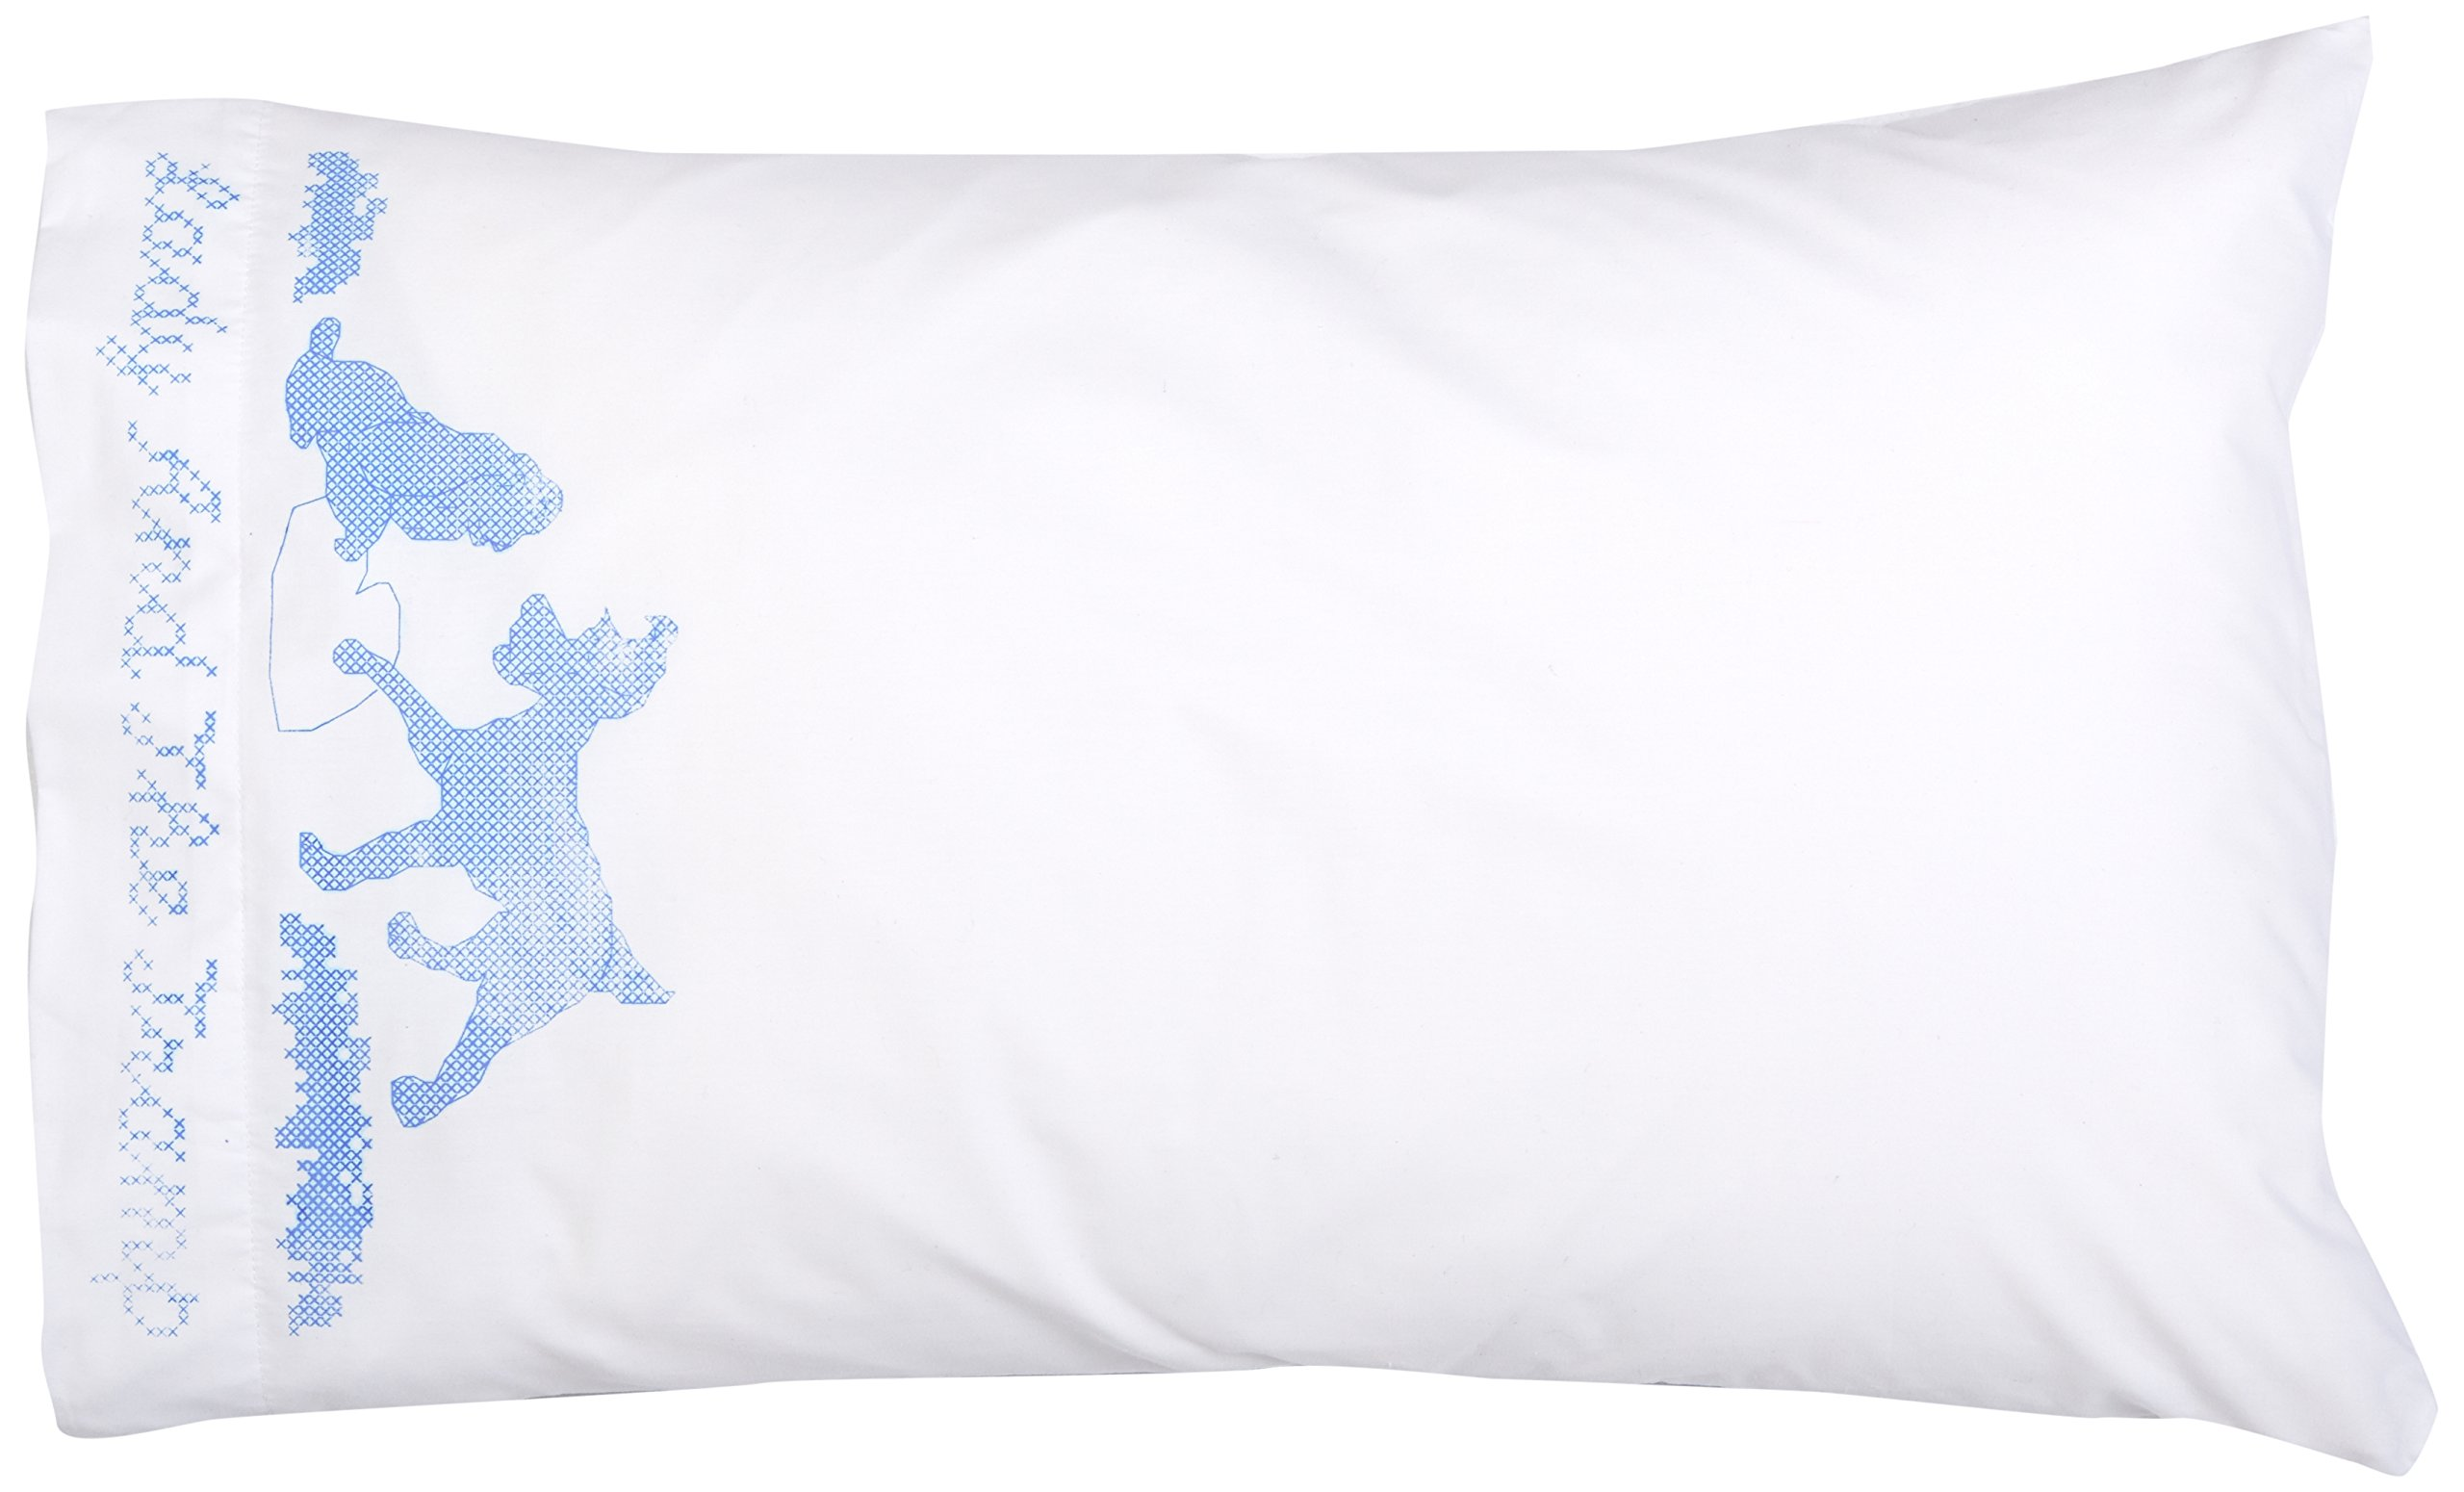 M C G Textiles Disney Dreams Stamped Pillowcase, 20 x 30-Inch, Lady and The Tramp, 2-Pack